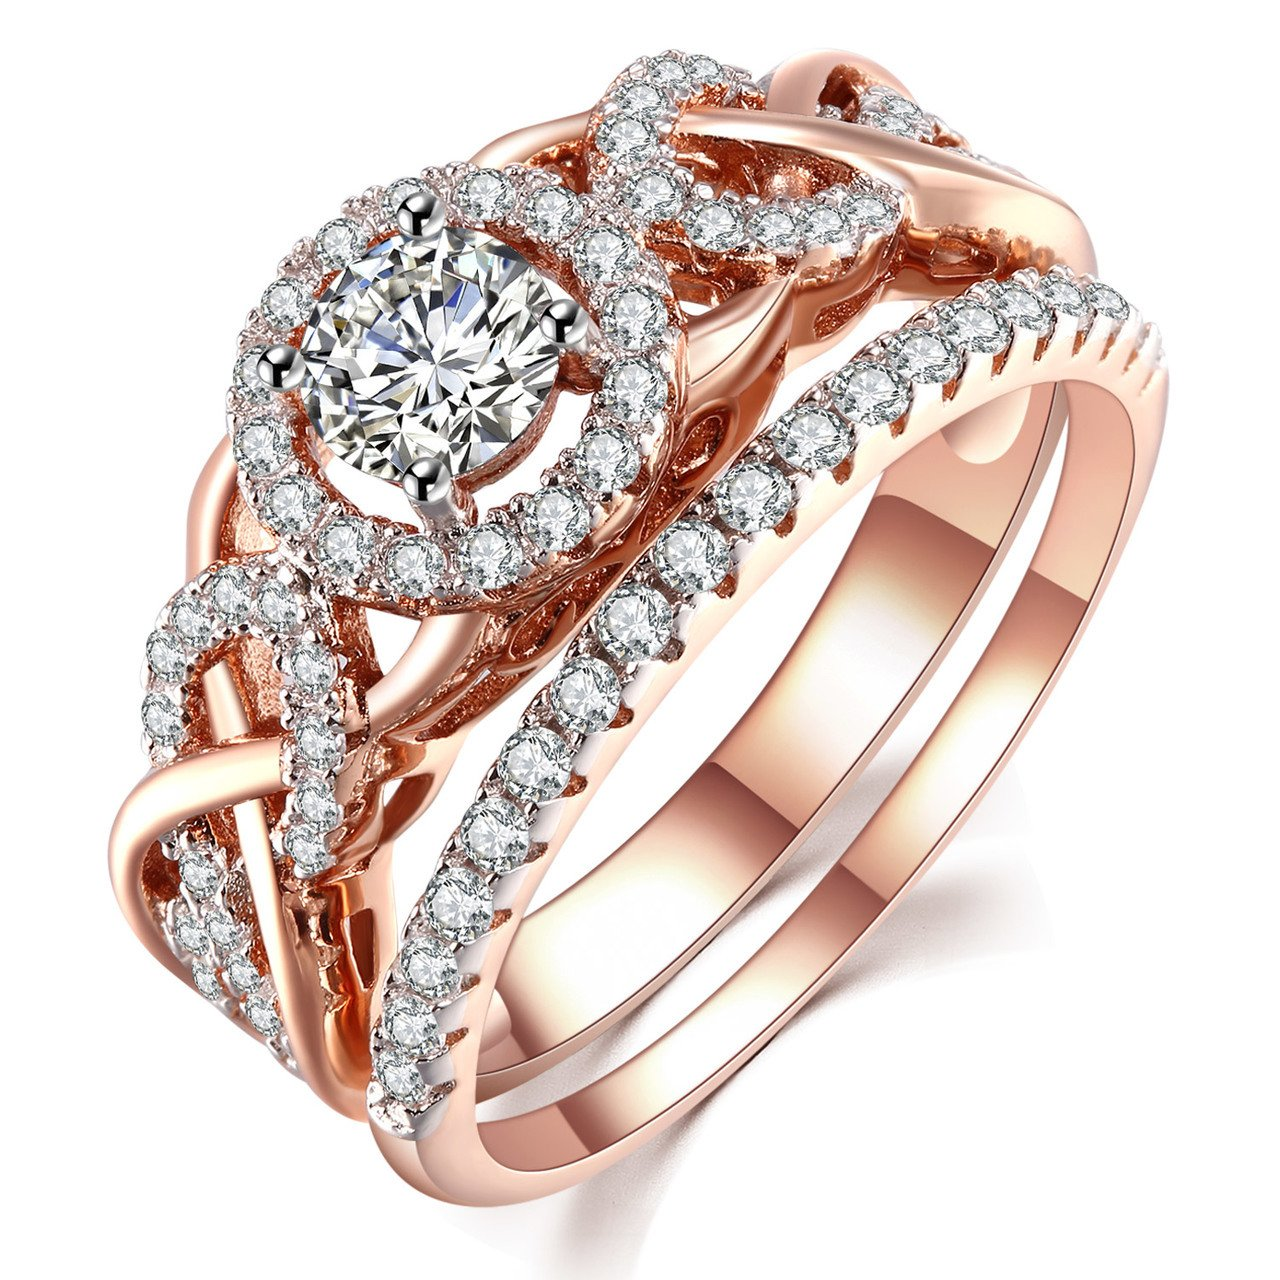 GuqiGuli Twist Shank Rose Gold Plate Sterling Silver Cubic Zirconia Bridal Engagement Wedding Ring Sets Size 8